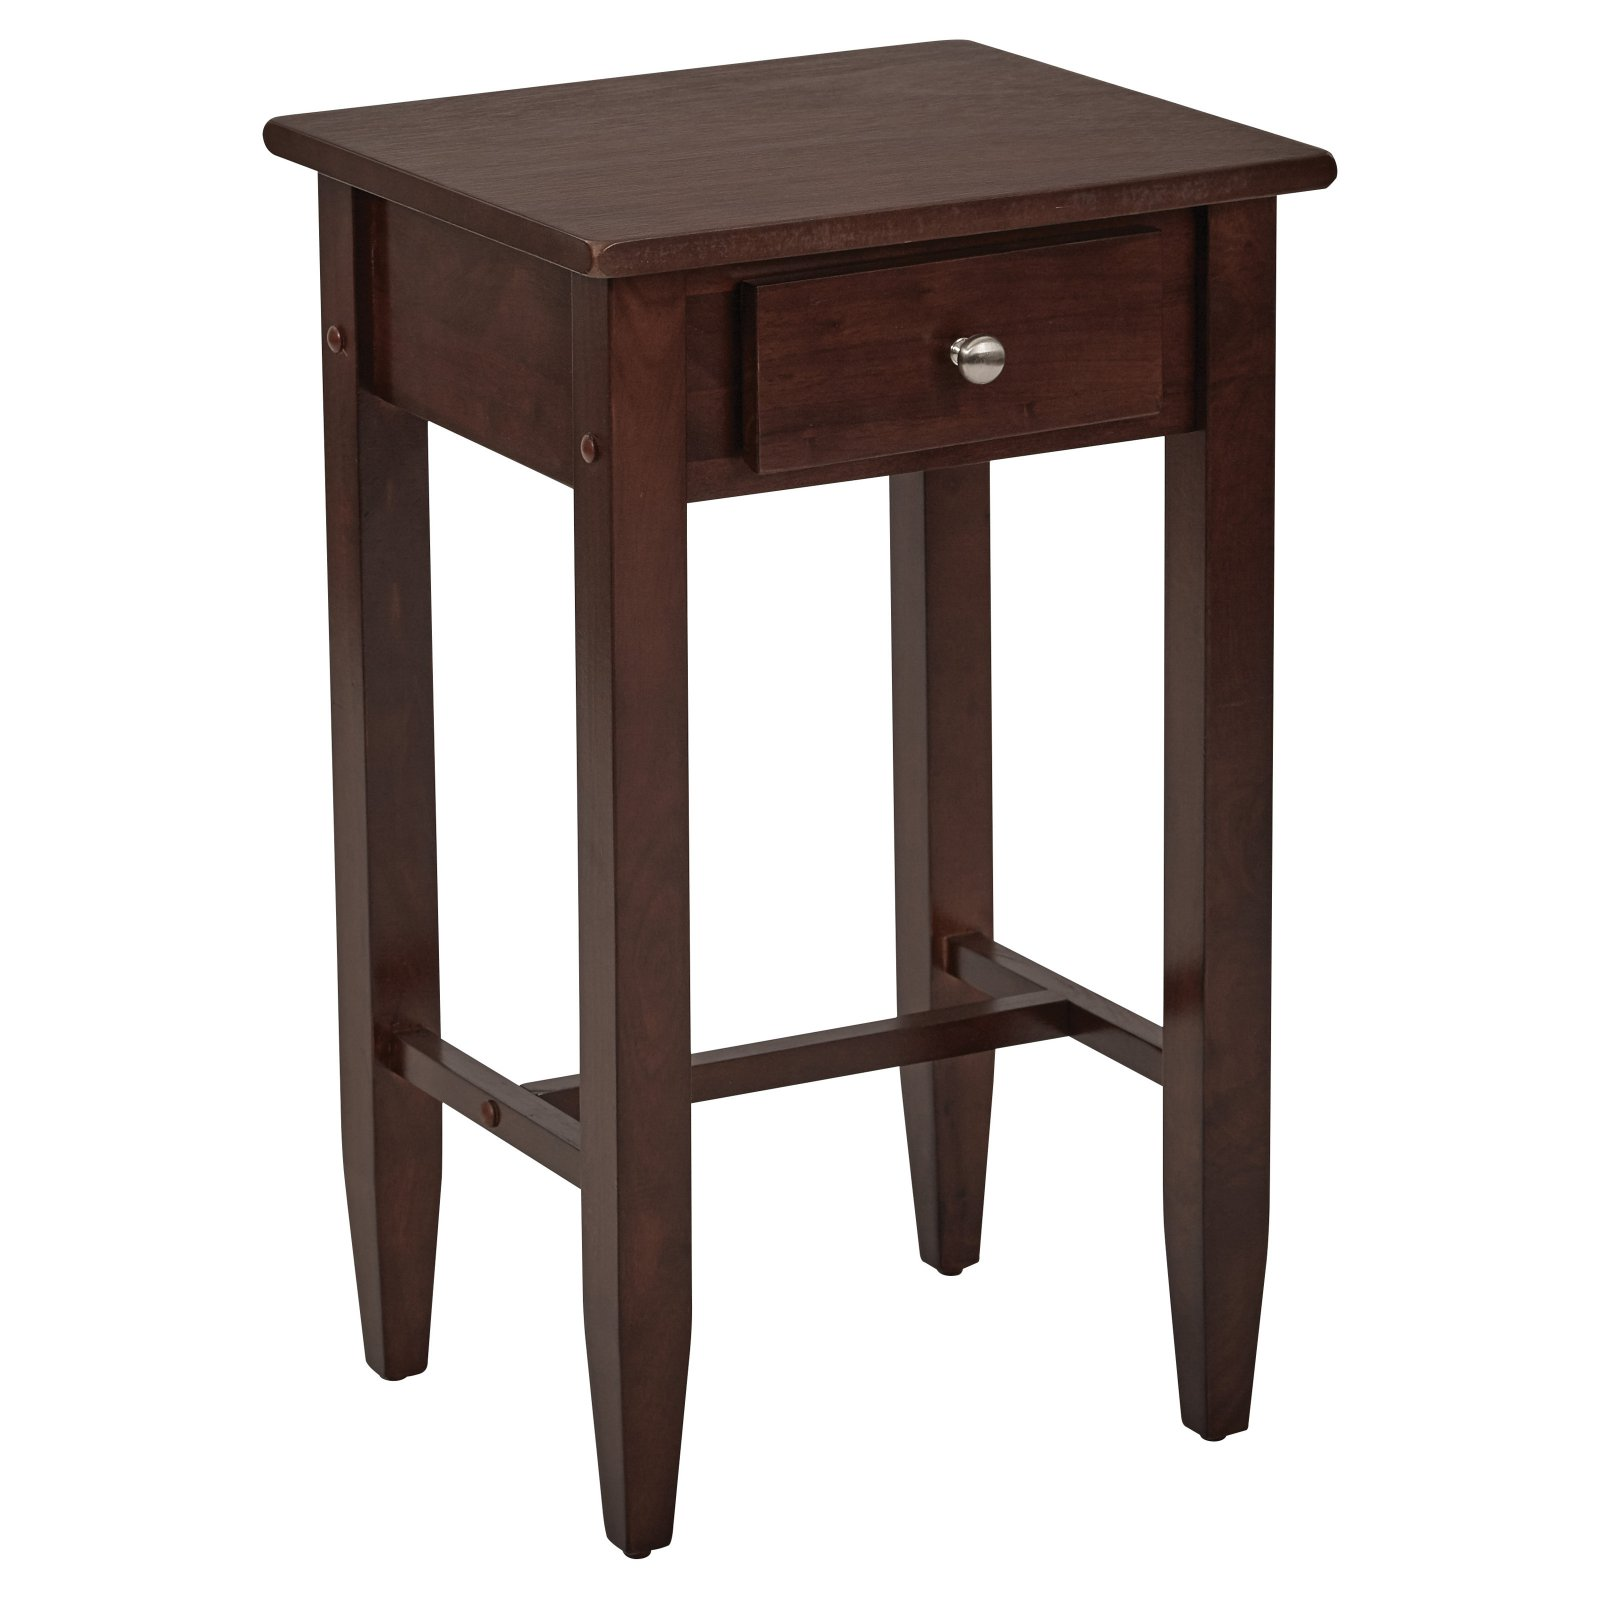 Tall Side Table, Espresso